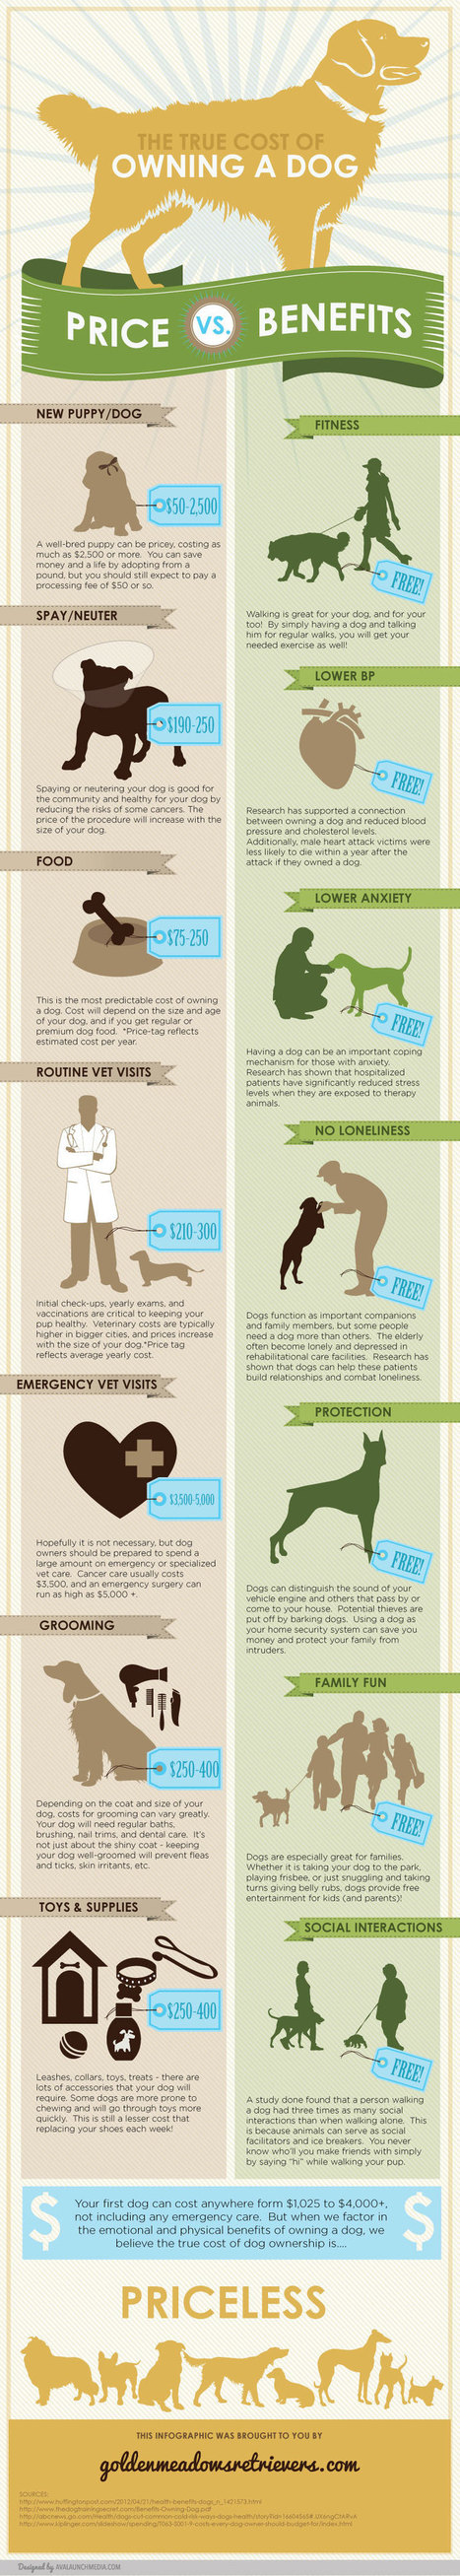 True Cost of Dog Ownership Infographic   Dog Care Guide   Scoop.it